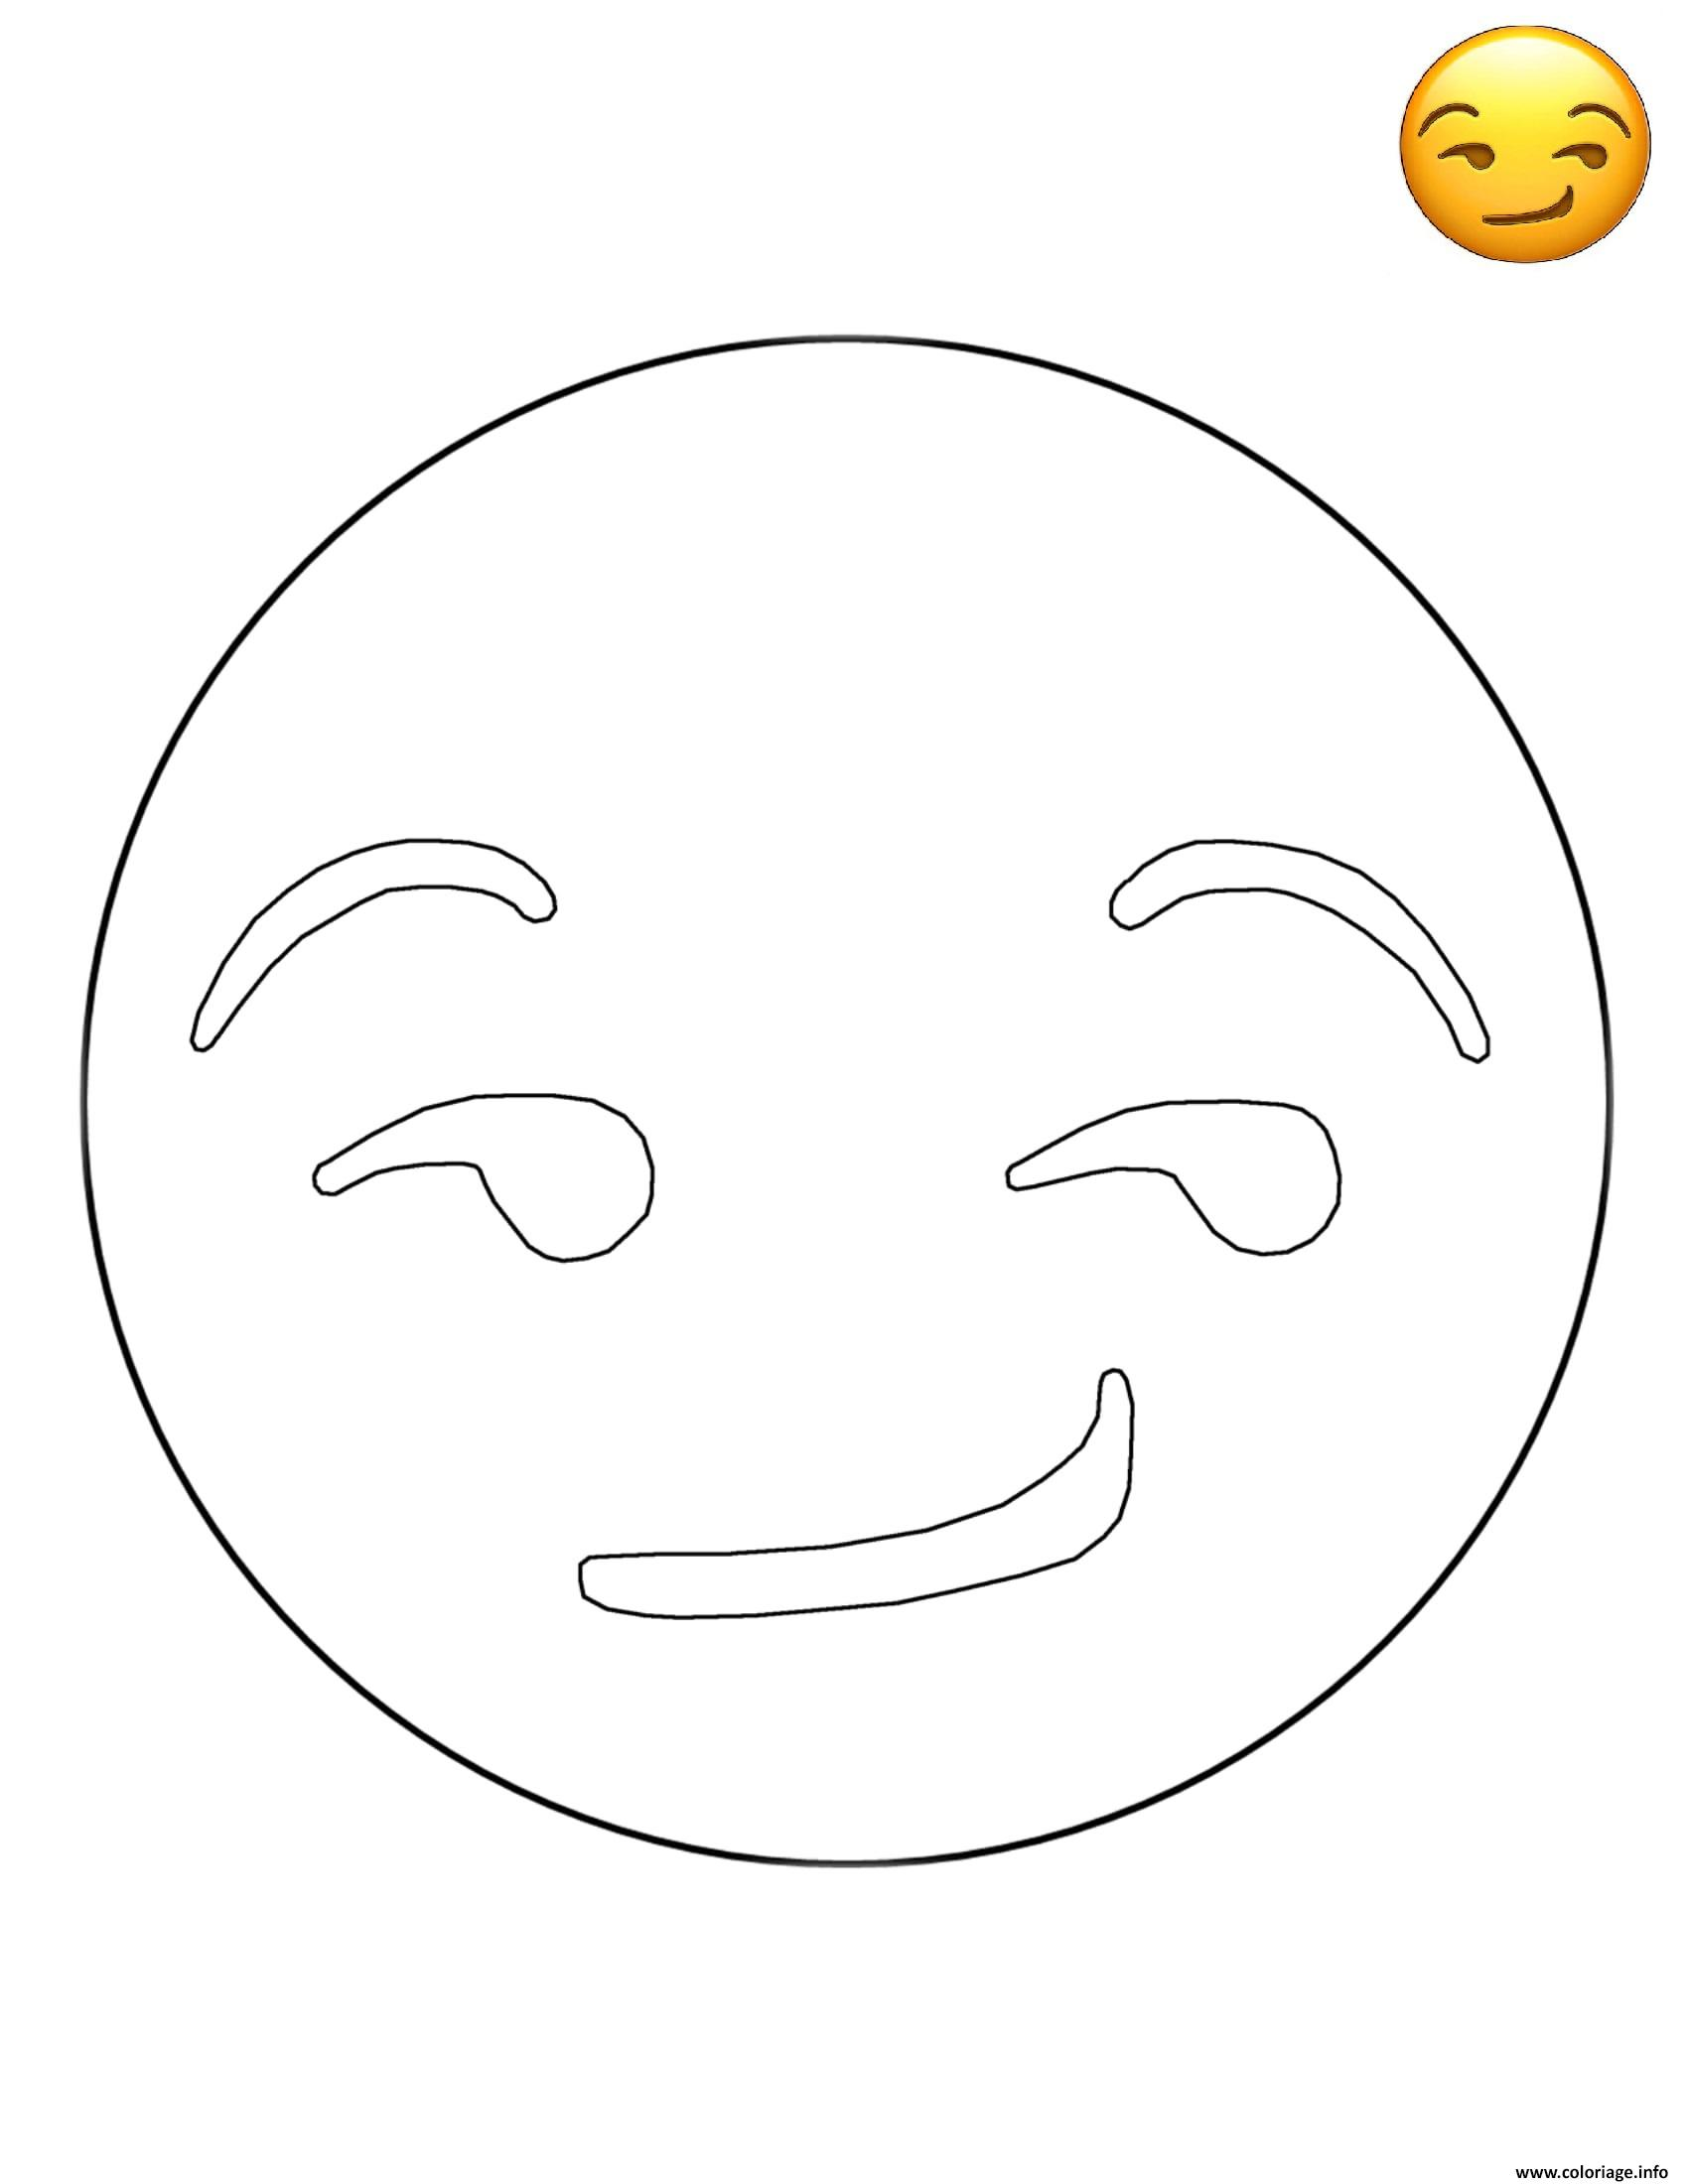 Haut Dessin A Imprimer Smiley 85 Pour Coloriage Books with Dessin A Imprimer Smiley